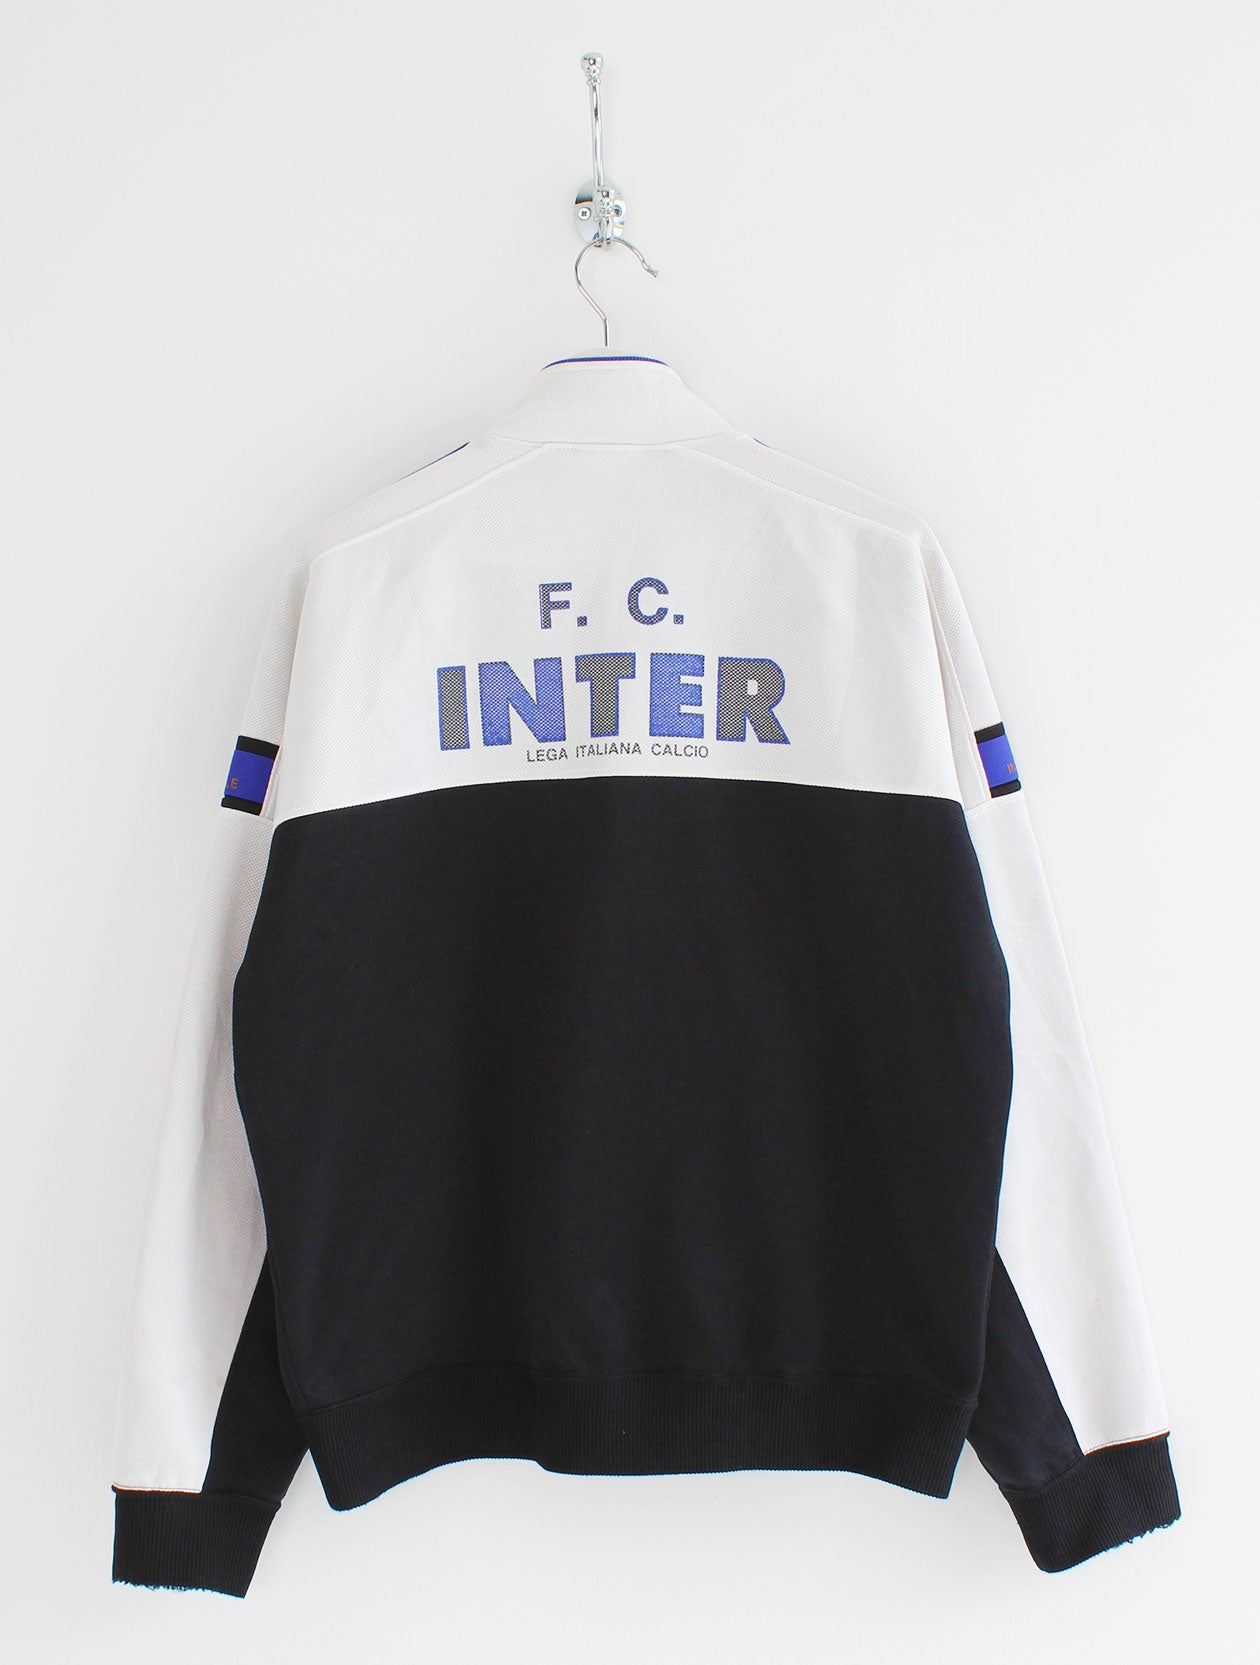 newest 09eb2 a60dd Inter Milan Jacket (L)